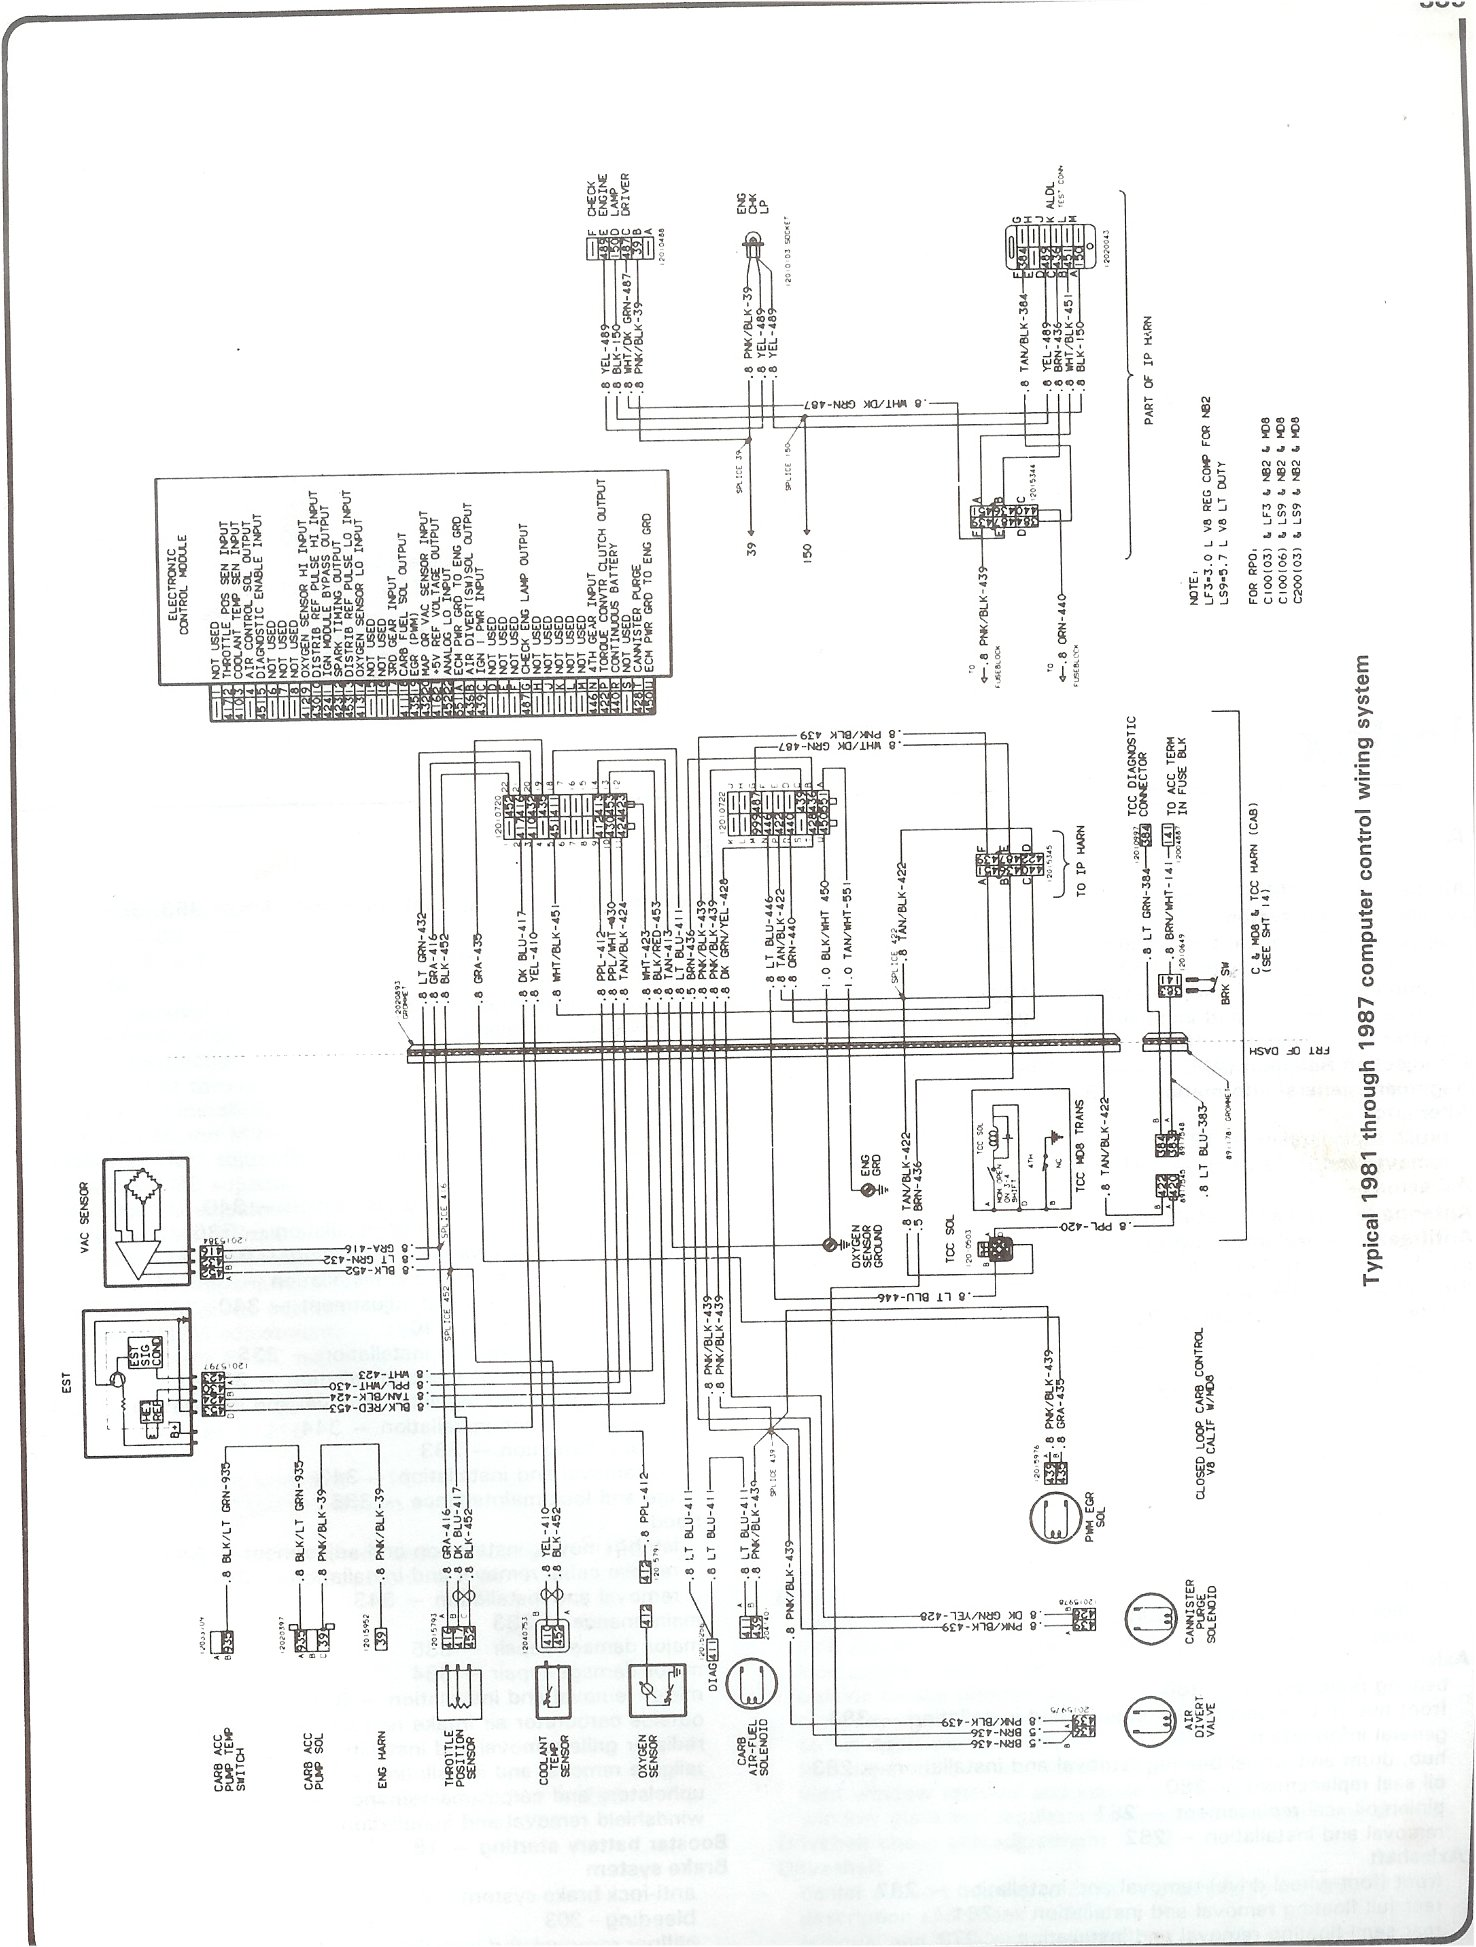 WRG-8765] Tail Light Wiring Diagram 1987 Chevy K 5 on chevy s10 relay, 85 chevy truck wiring diagram, 93 chevy truck wiring diagram, 1985 chevy truck wiring diagram, chevy 1500 wiring diagram, chevy k1500 wiring diagram, isuzu hombre wiring diagram, chevy cruze wiring diagram, chevy lumina wiring diagram, chevy metro wiring diagram, chevy classic wiring diagram, chevy s10 cover, chevy s10 starter wires, chevy pickup wiring diagram, chevy s10 front diagrams, s 10 truck wiring diagram, chevy volt wiring diagram, chevy s10 blazer, s10 electrical diagram, chevy blazer wiring diagram,